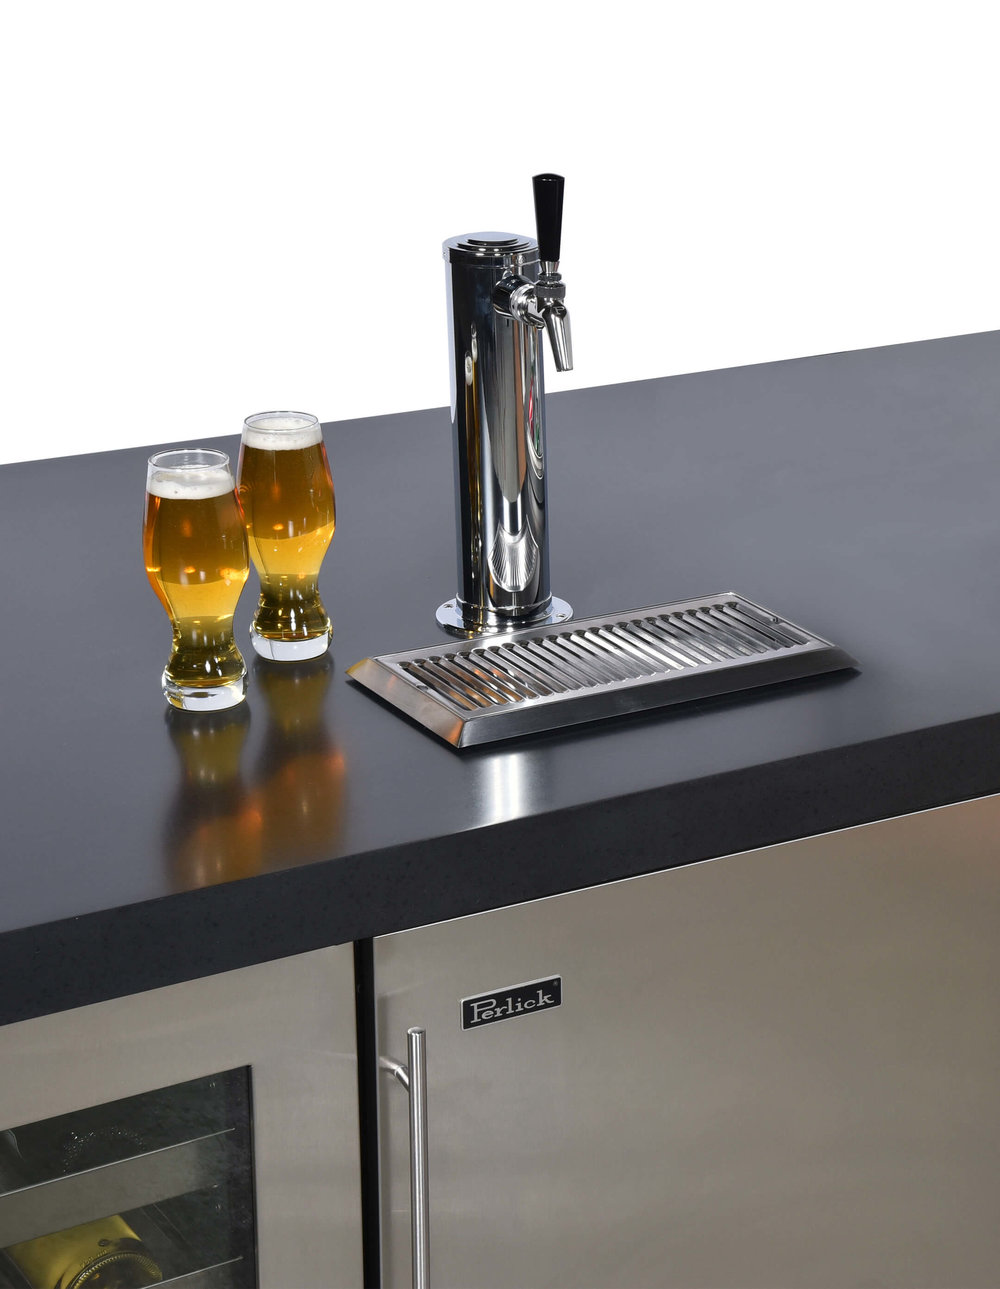 BUILT-IN BEER TAP & KEG